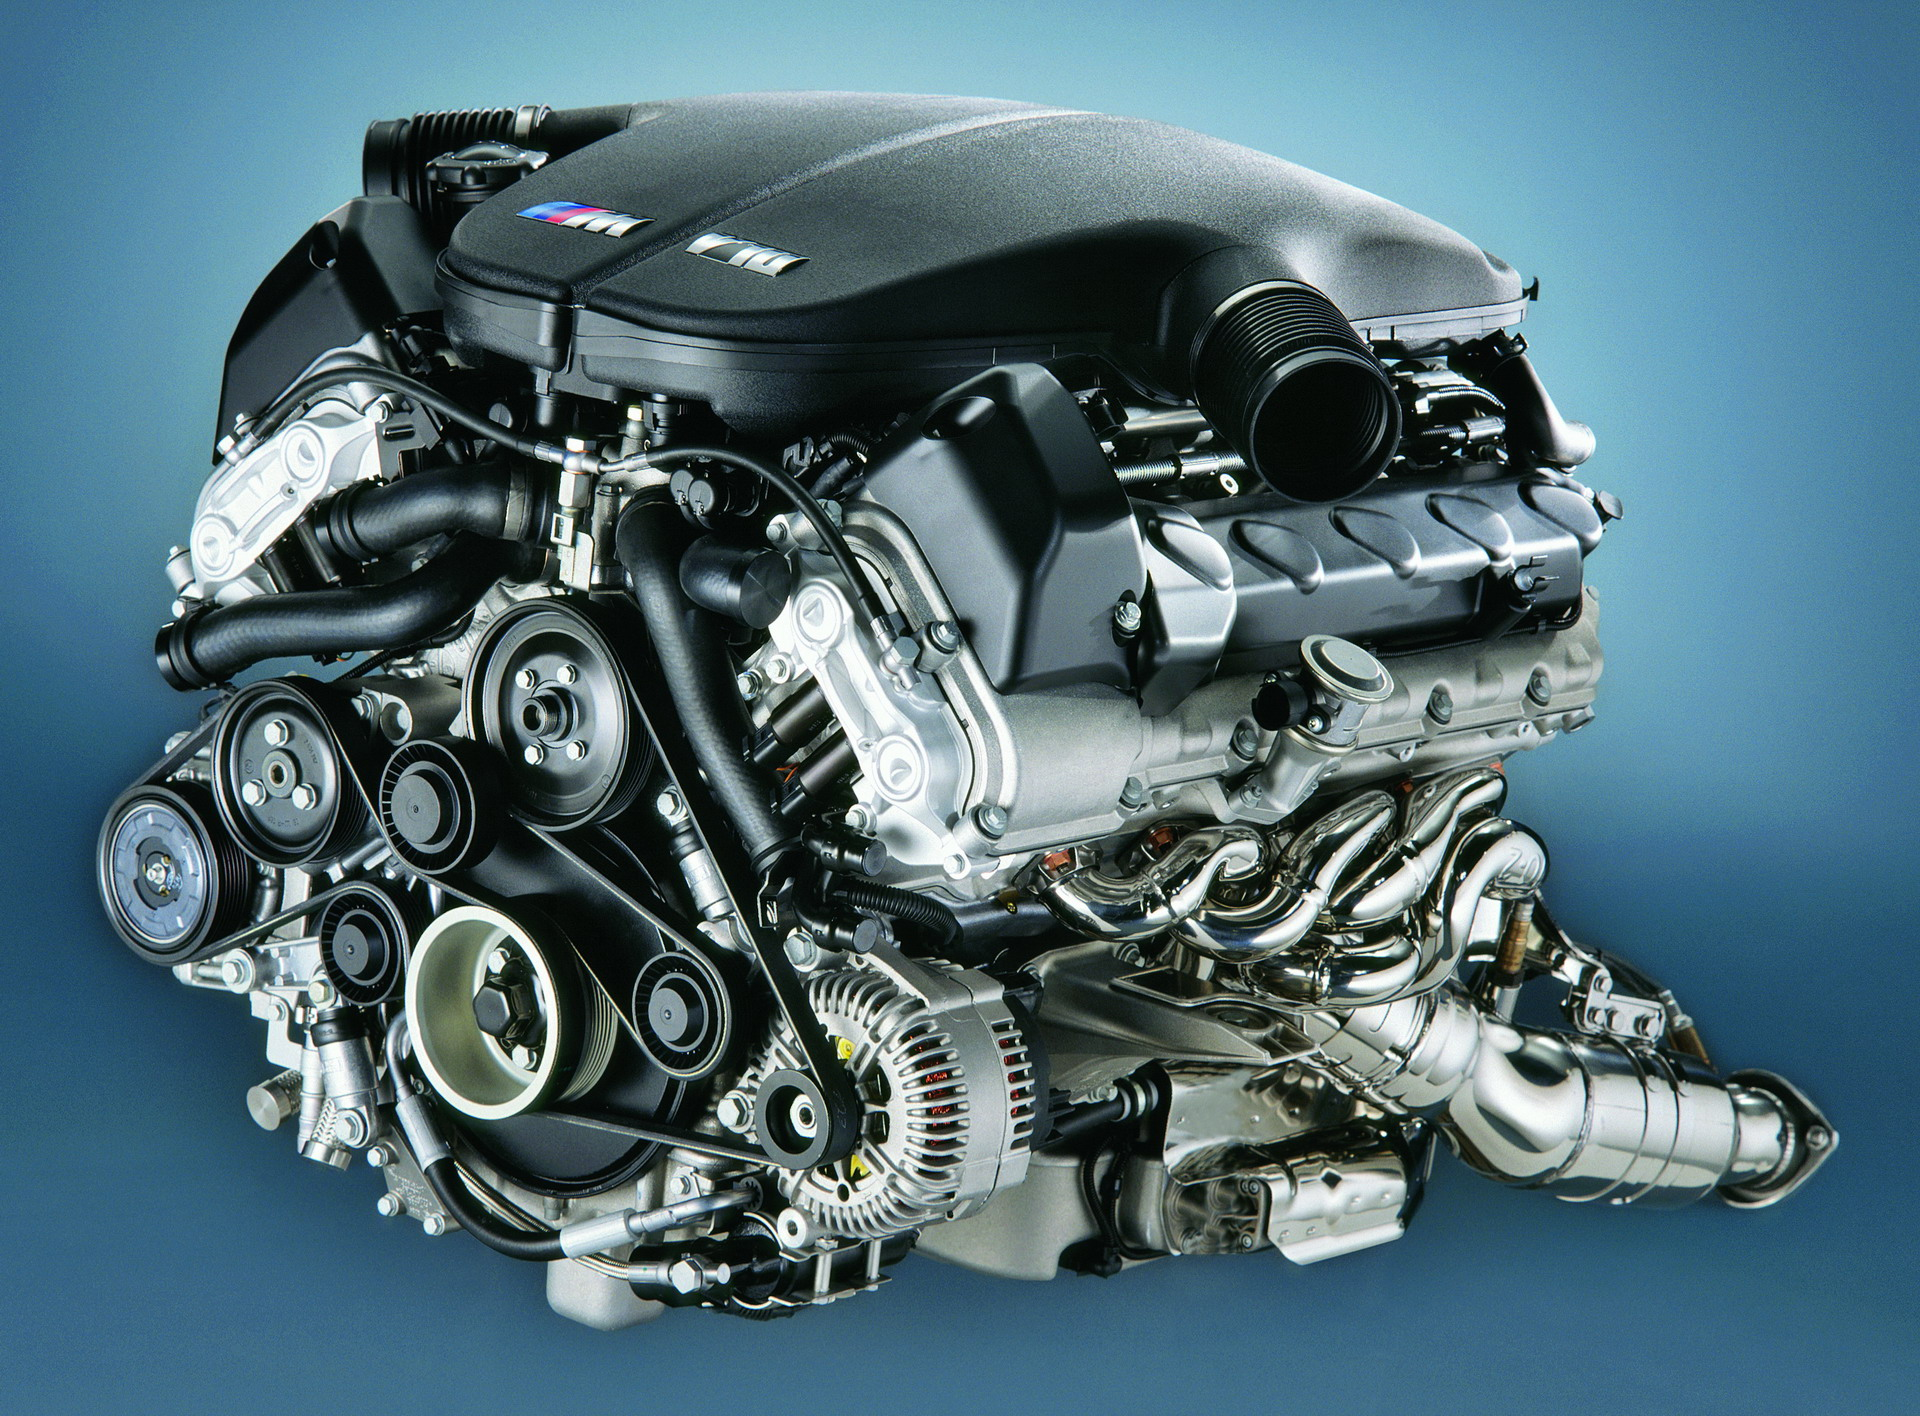 The BMW S85 V10 engine 1